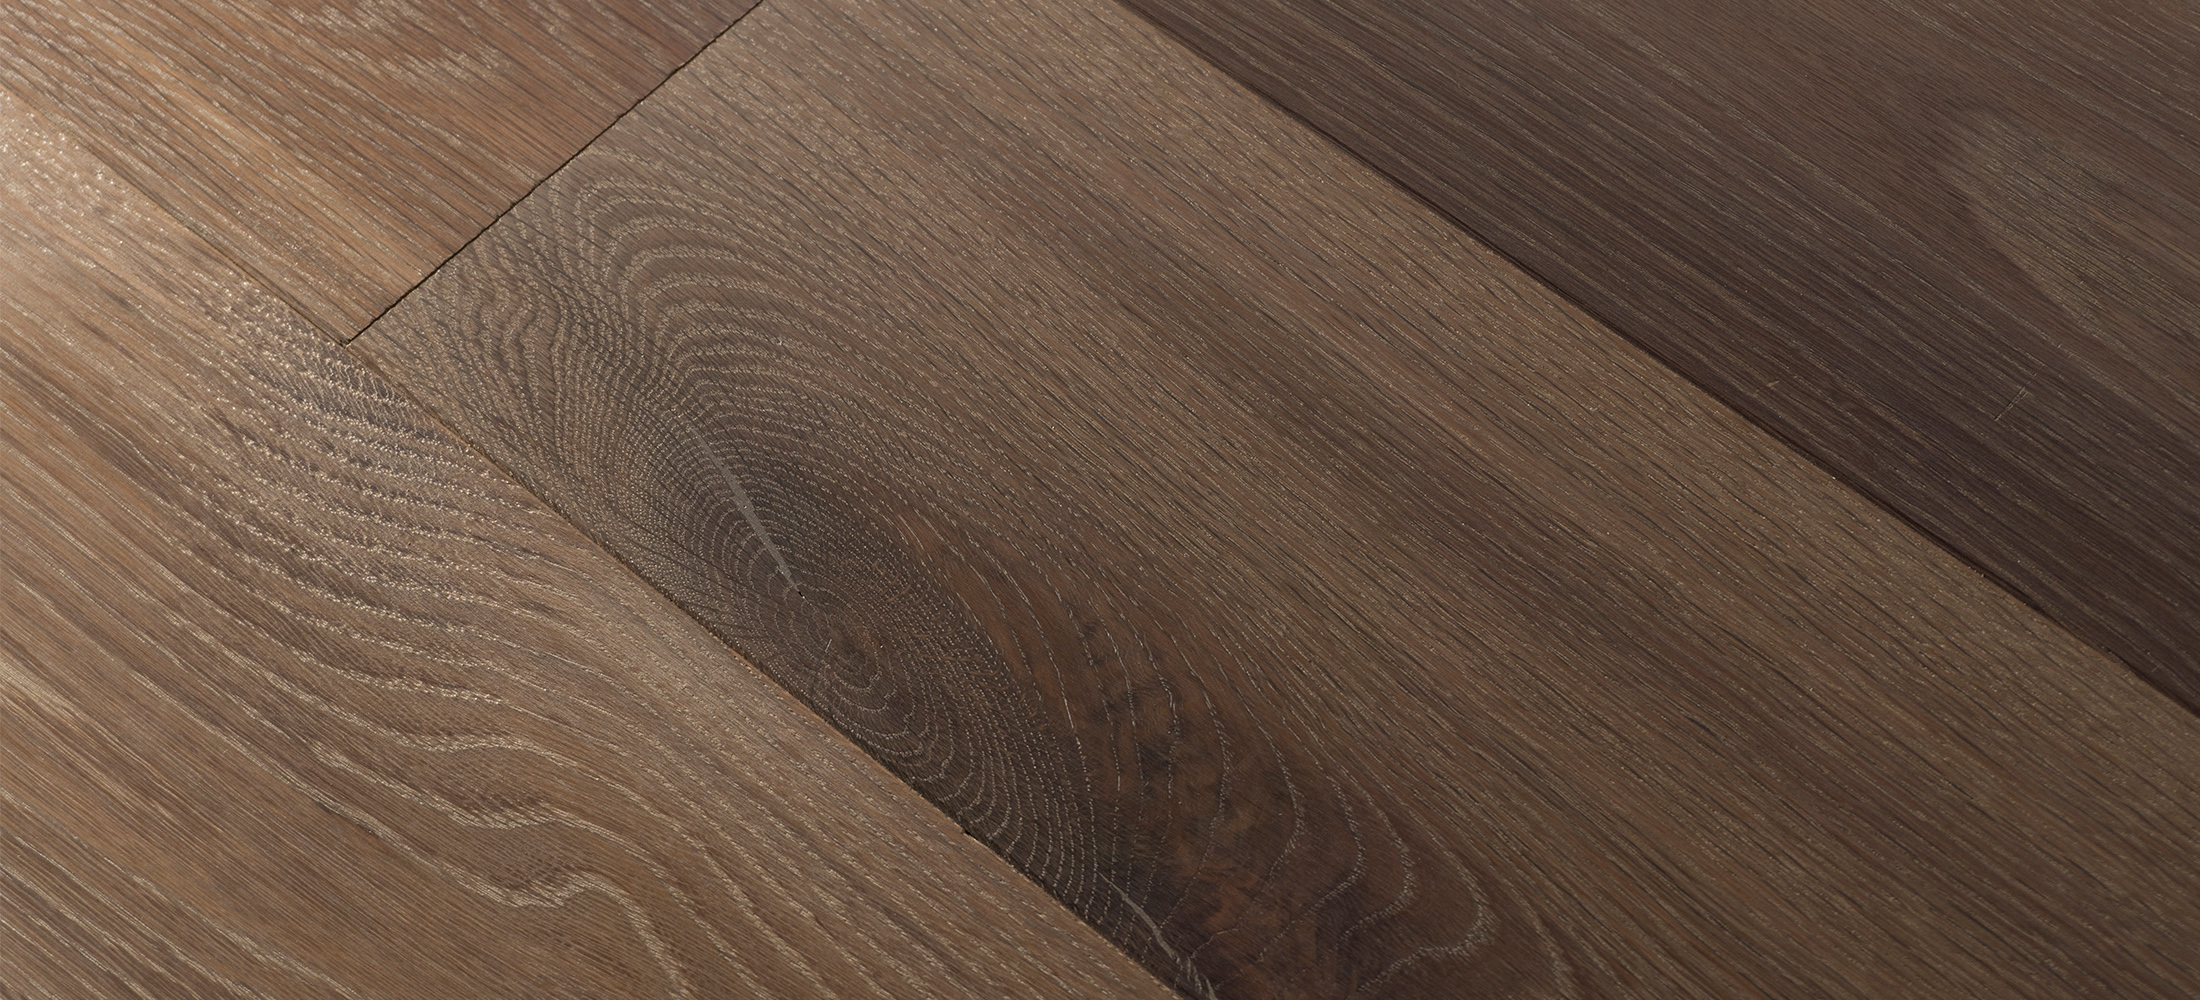 White Oak Wide Plank Flooring Smooth Surface